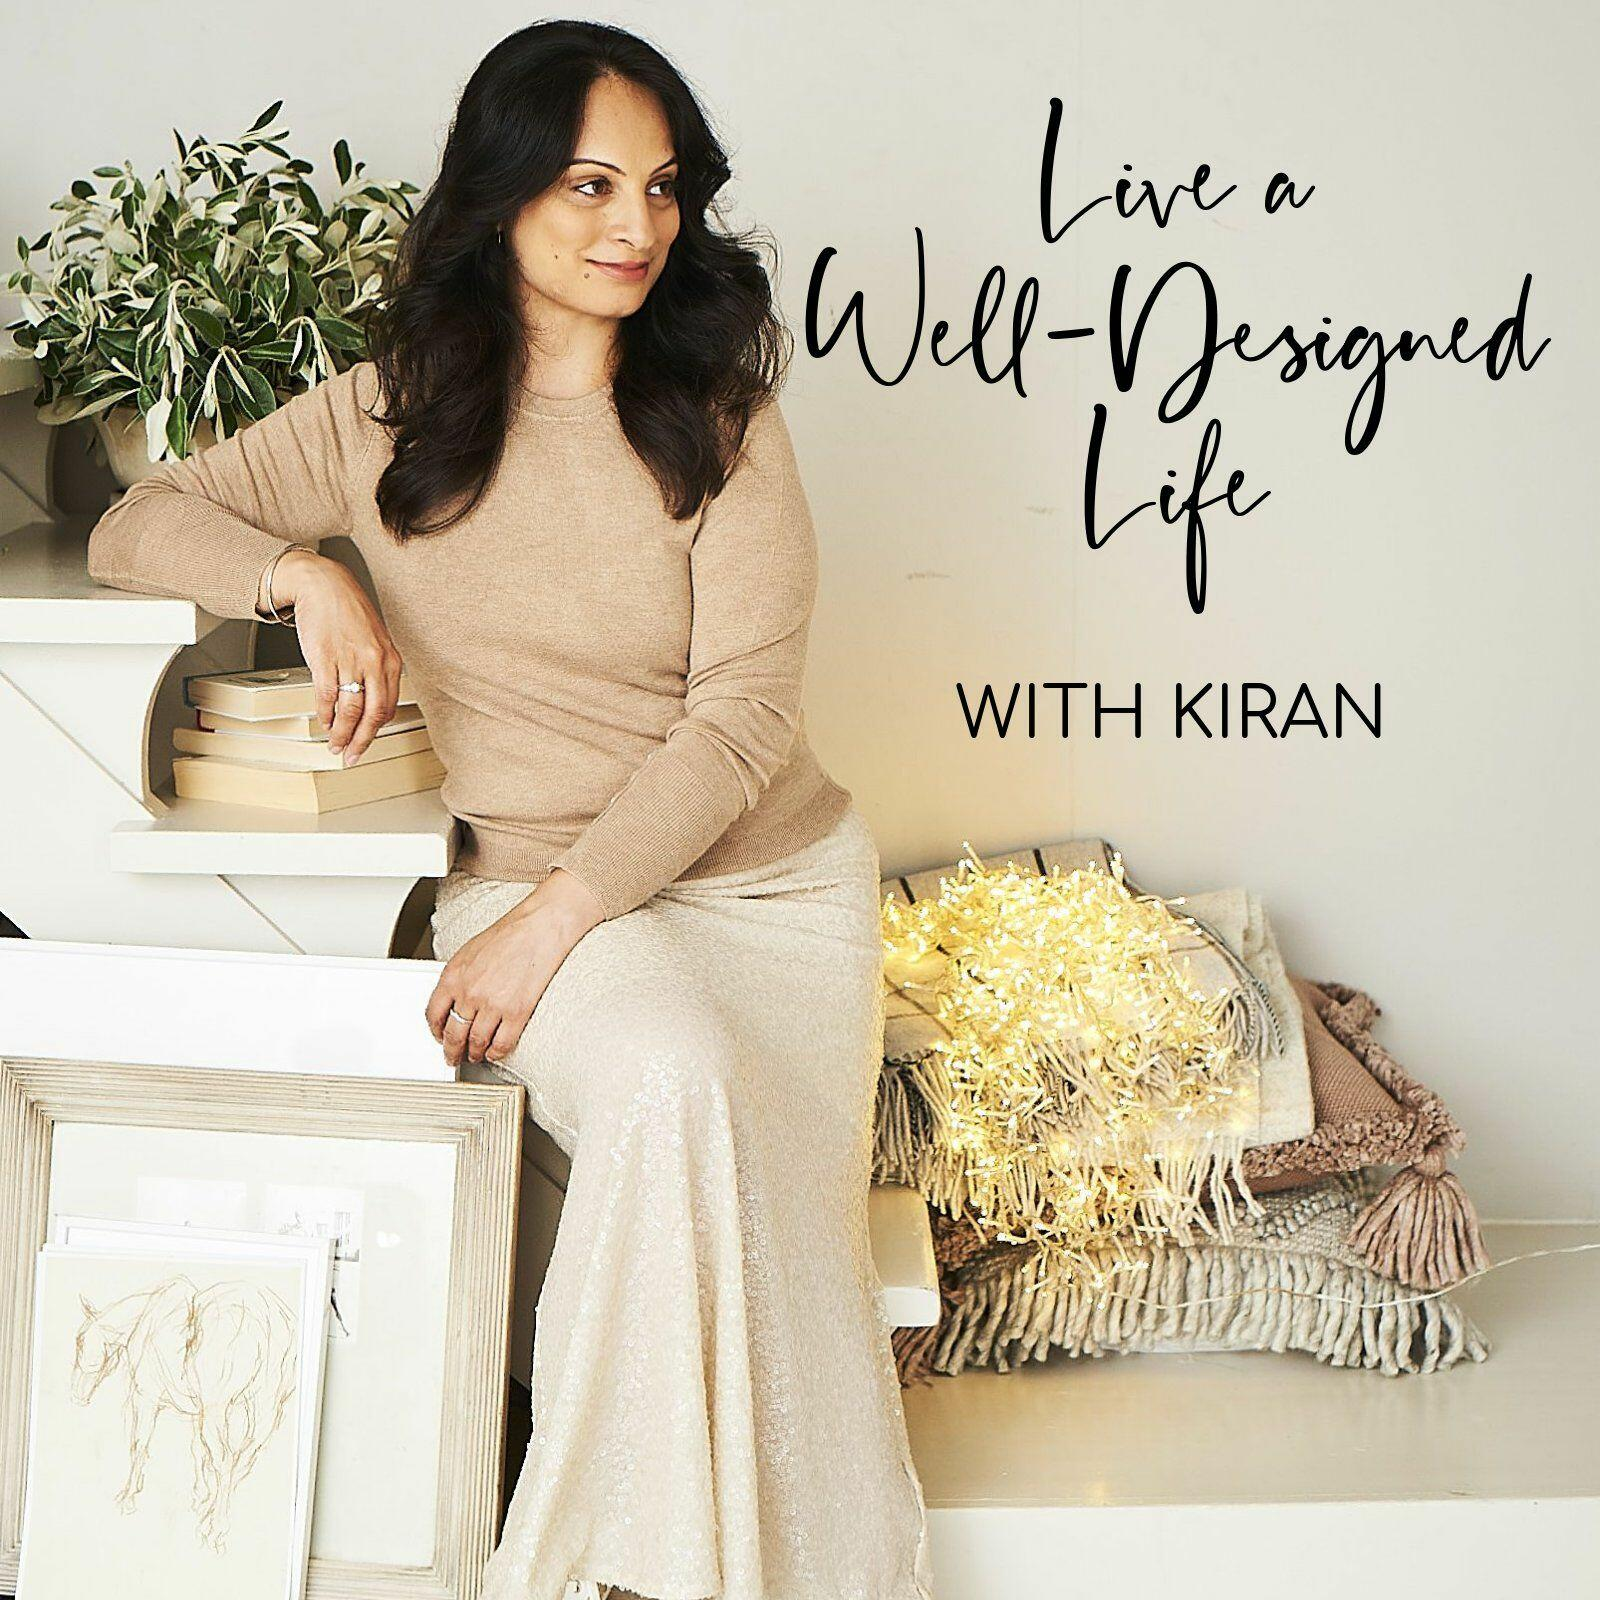 Live a Well-Designed Life